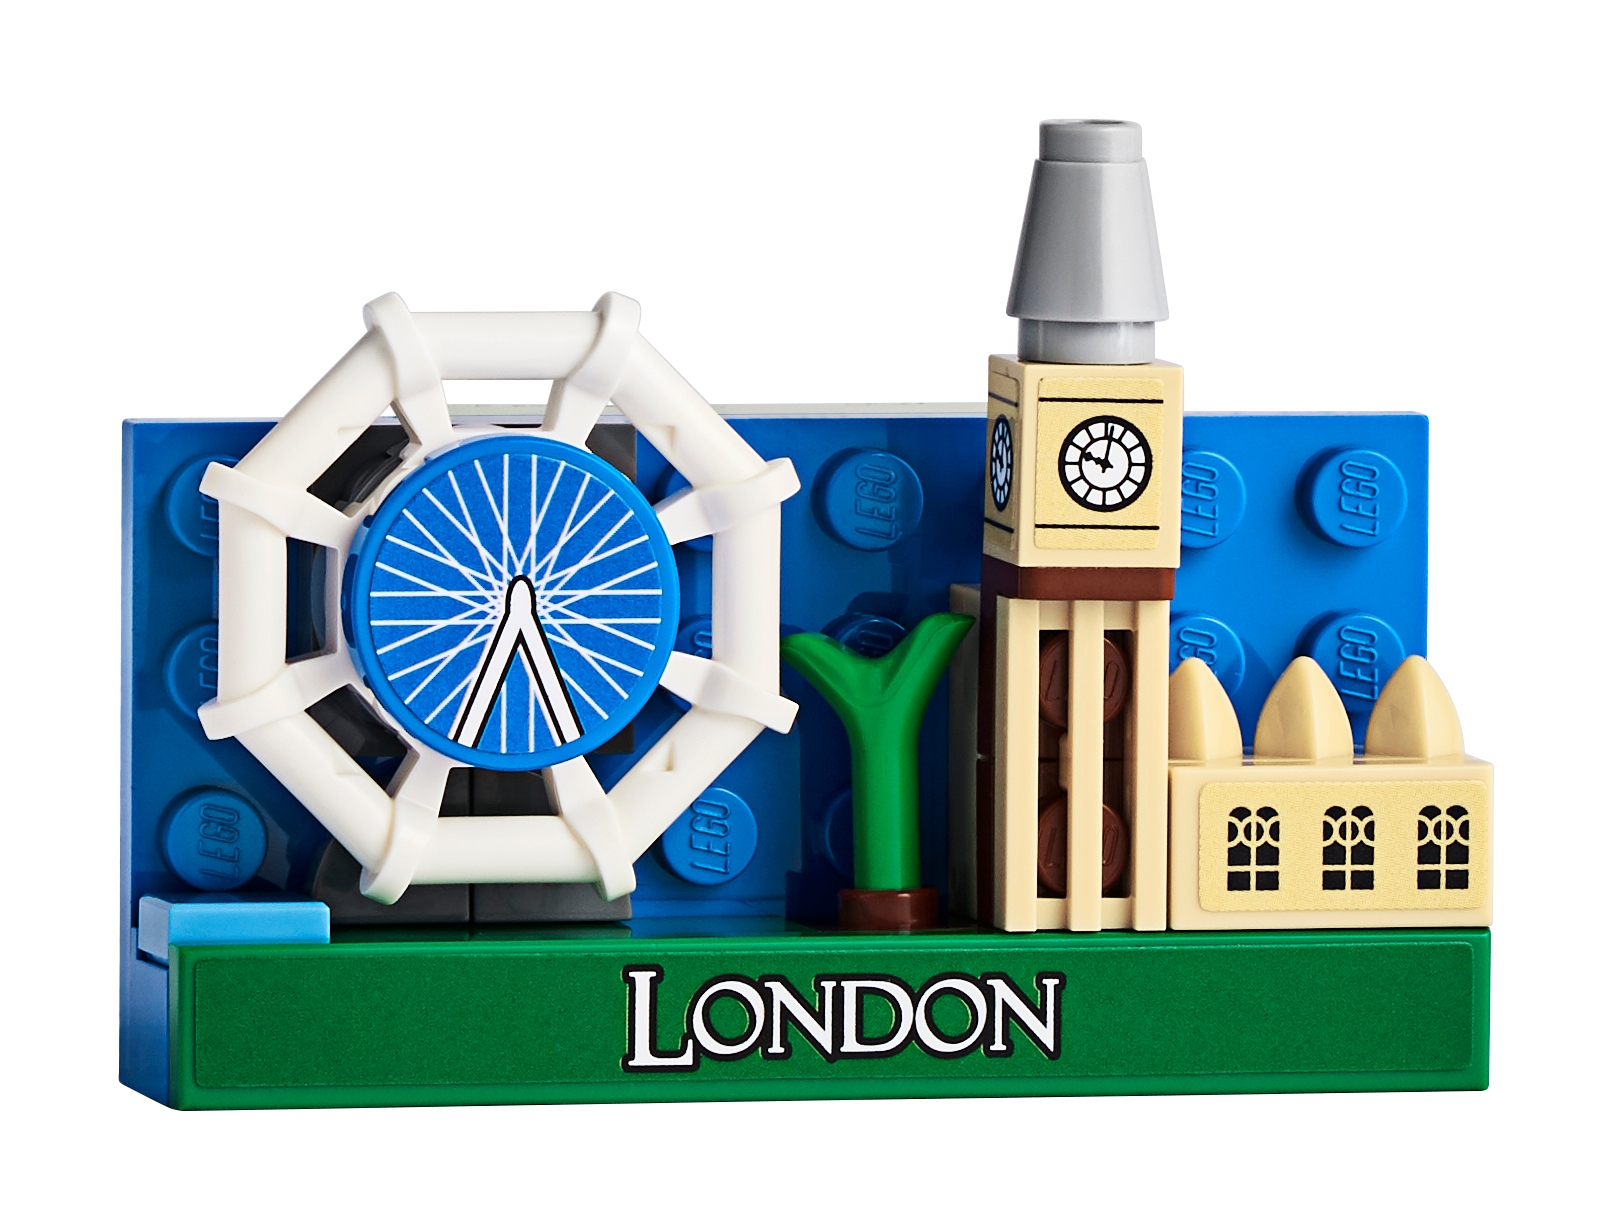 London Magnet Build 854012 Unknown Buy Online At The Official Lego Shop Us